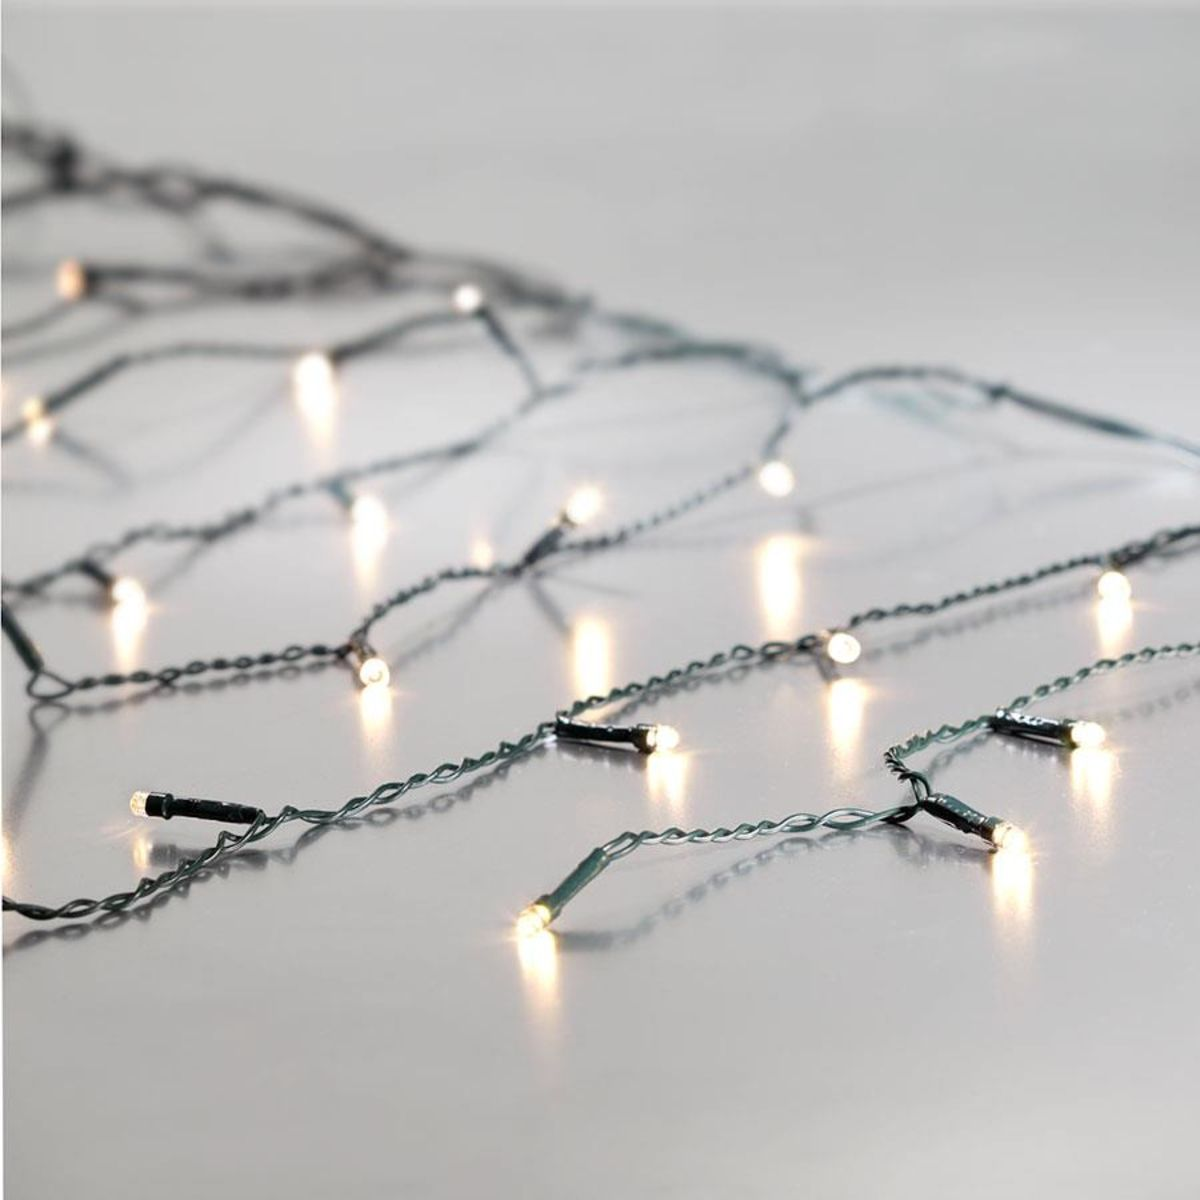 Multi-Function Icicle Lights - Warm White, 250 LED Bulbs | Kmart ...